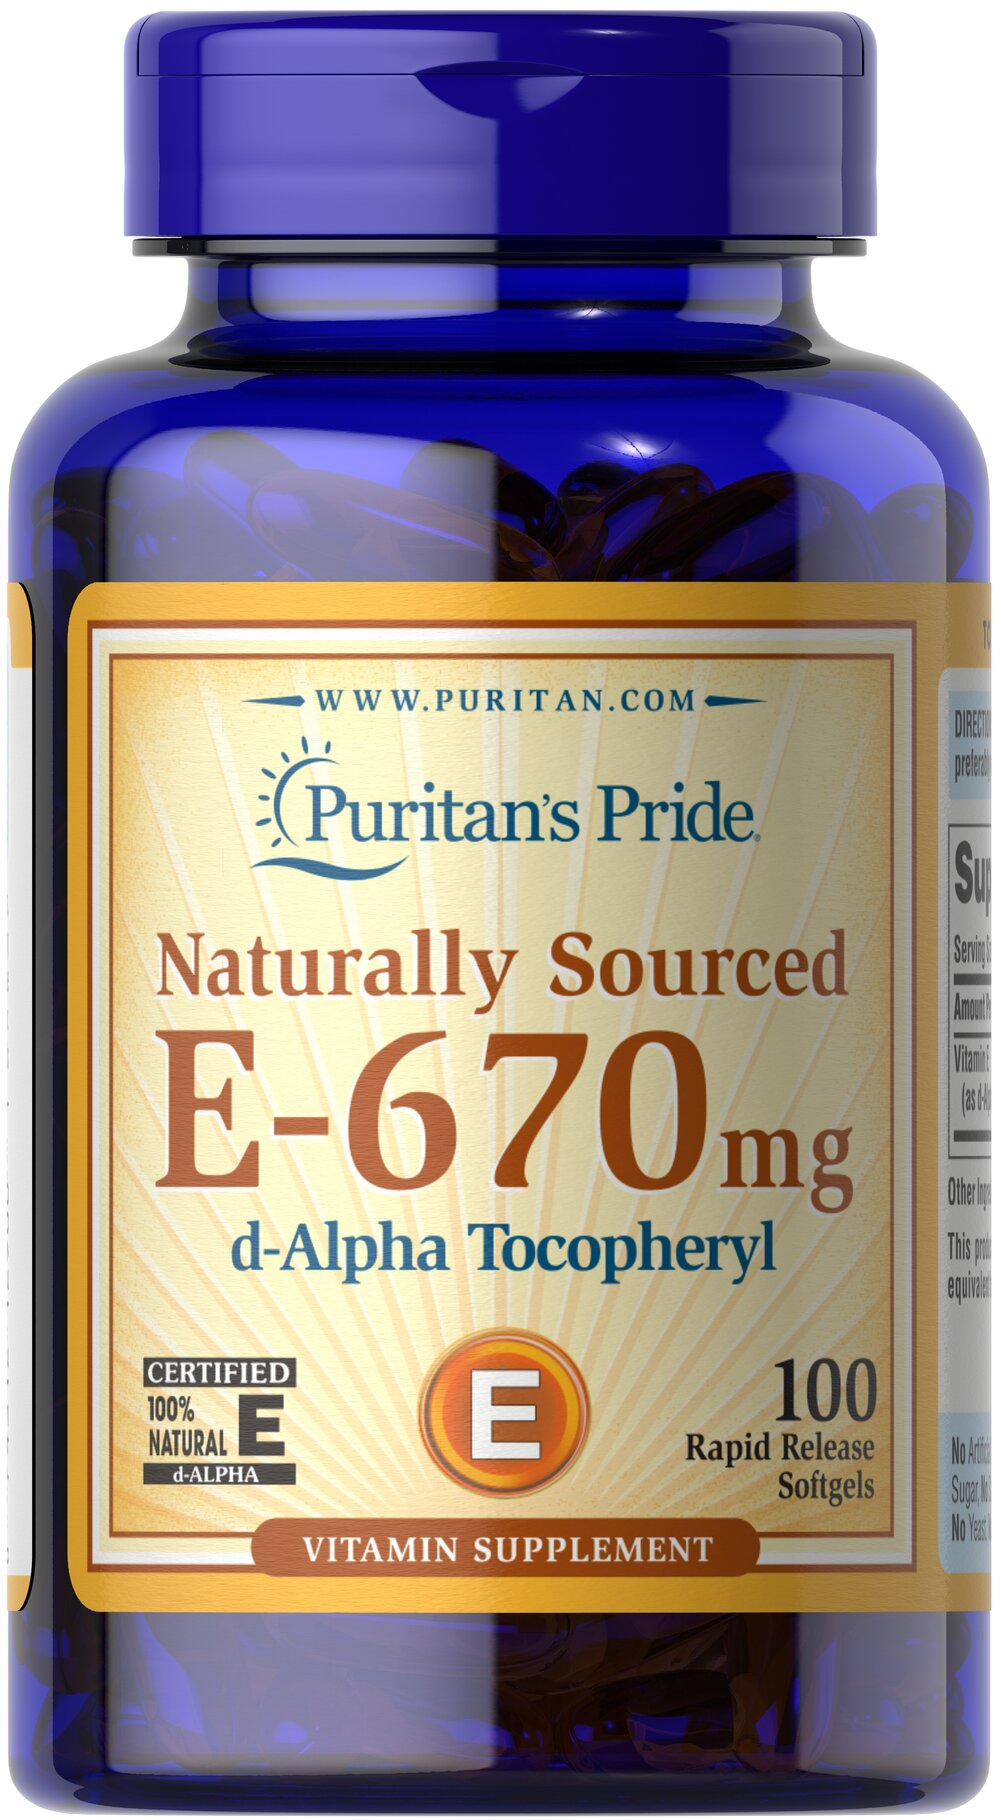 Vitamin E-100% 1000 IU Natural <p><strong>Vitamin E</strong> is a potent antioxidant that helps fight free radicals.** Studies have shown that oxidative stress caused by free radicals may contribute to the premature aging of cells.** Vitamin E also promotes immune function and helps support cardiovascular health.** Our Vitamin E is 100% natural and comes in a convenient to use softgel.</p> 100 Softgels 1000 IU $44.99